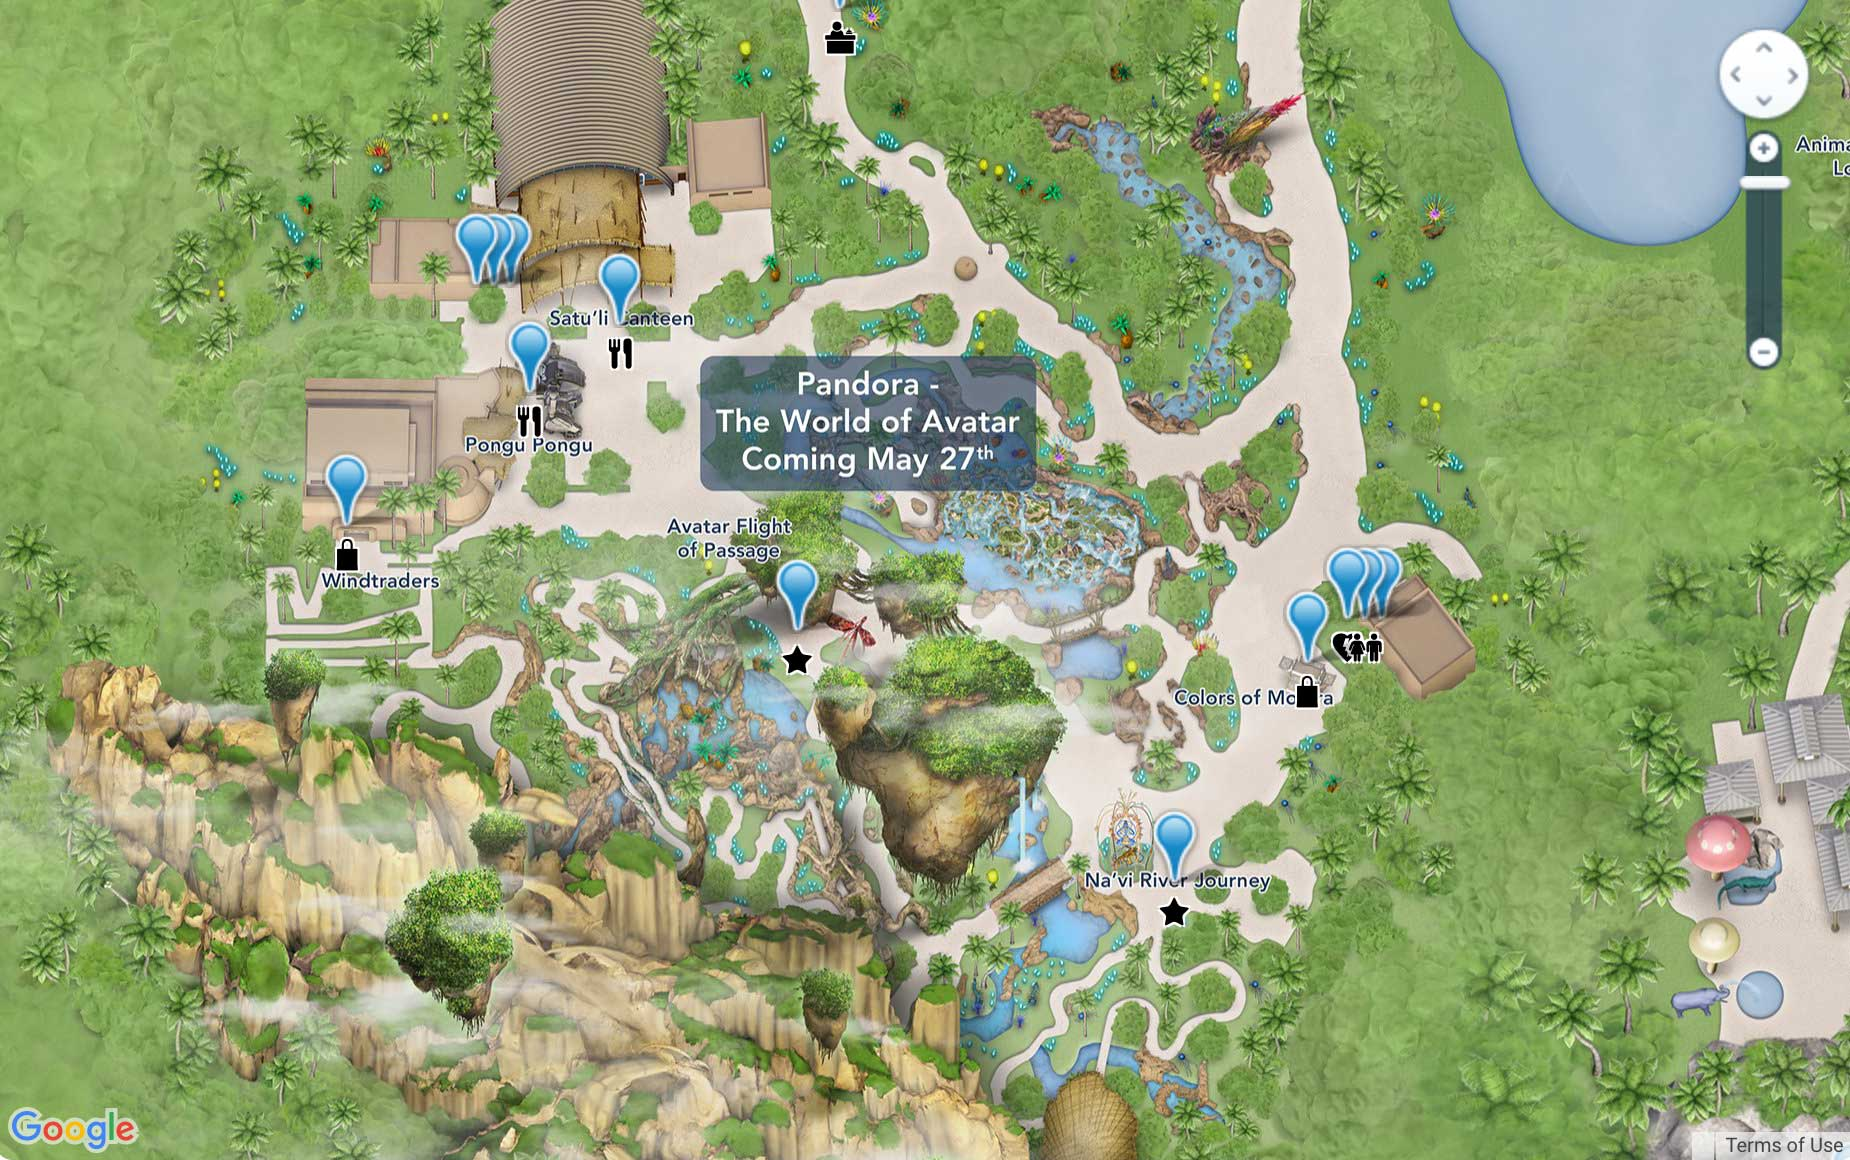 Photo disneys online walt disney world maps updated to include pandora the world of avatar map gumiabroncs Image collections